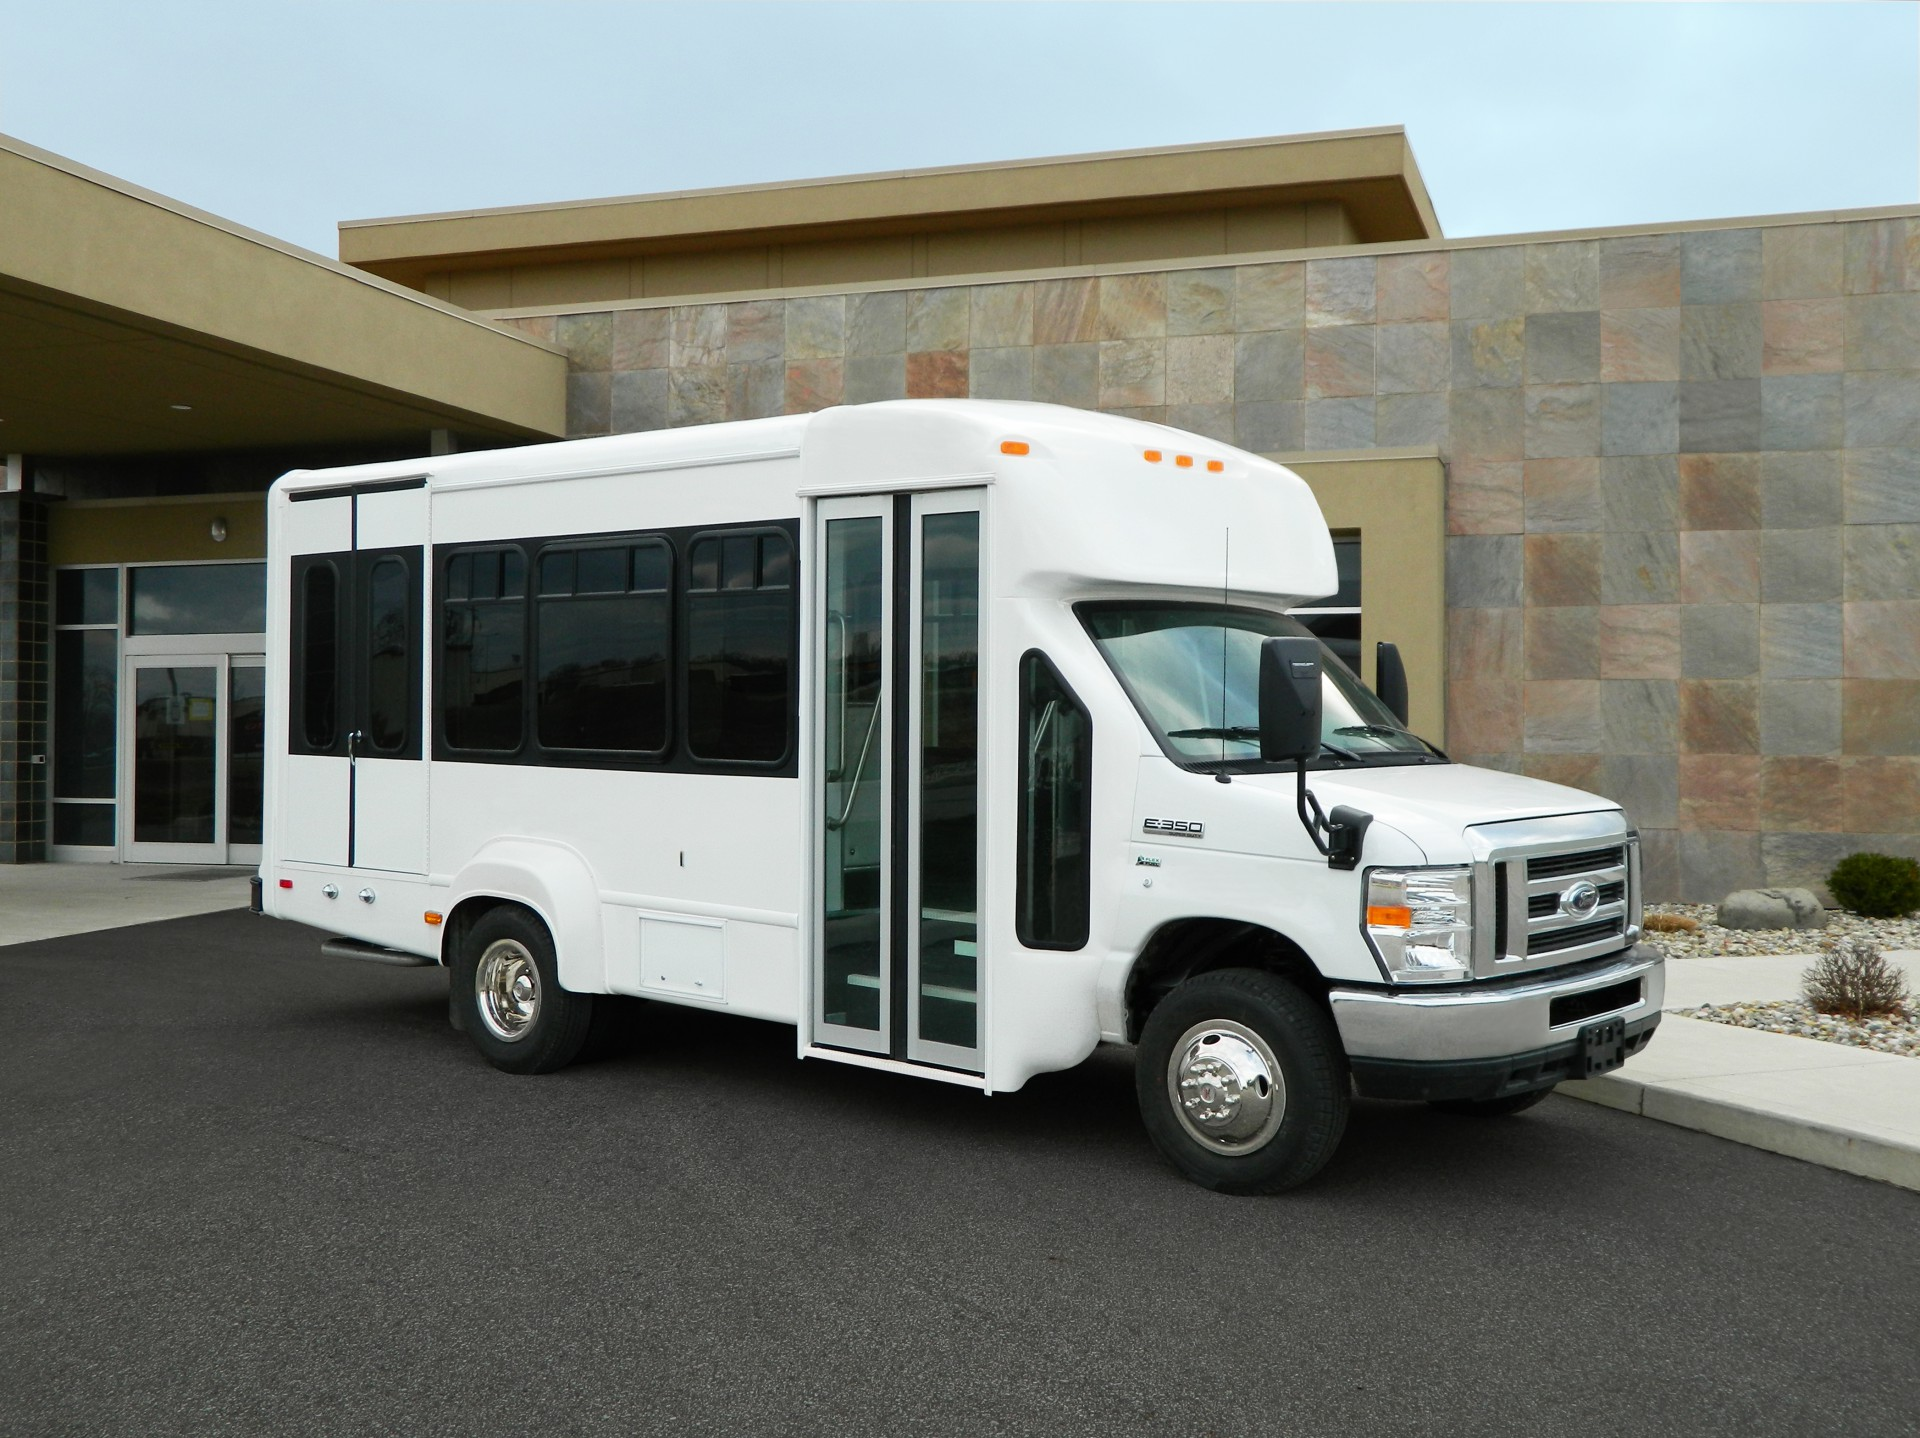 2021 Ford E-350 | Conversion: ADA Wheelchair Accessible Bus